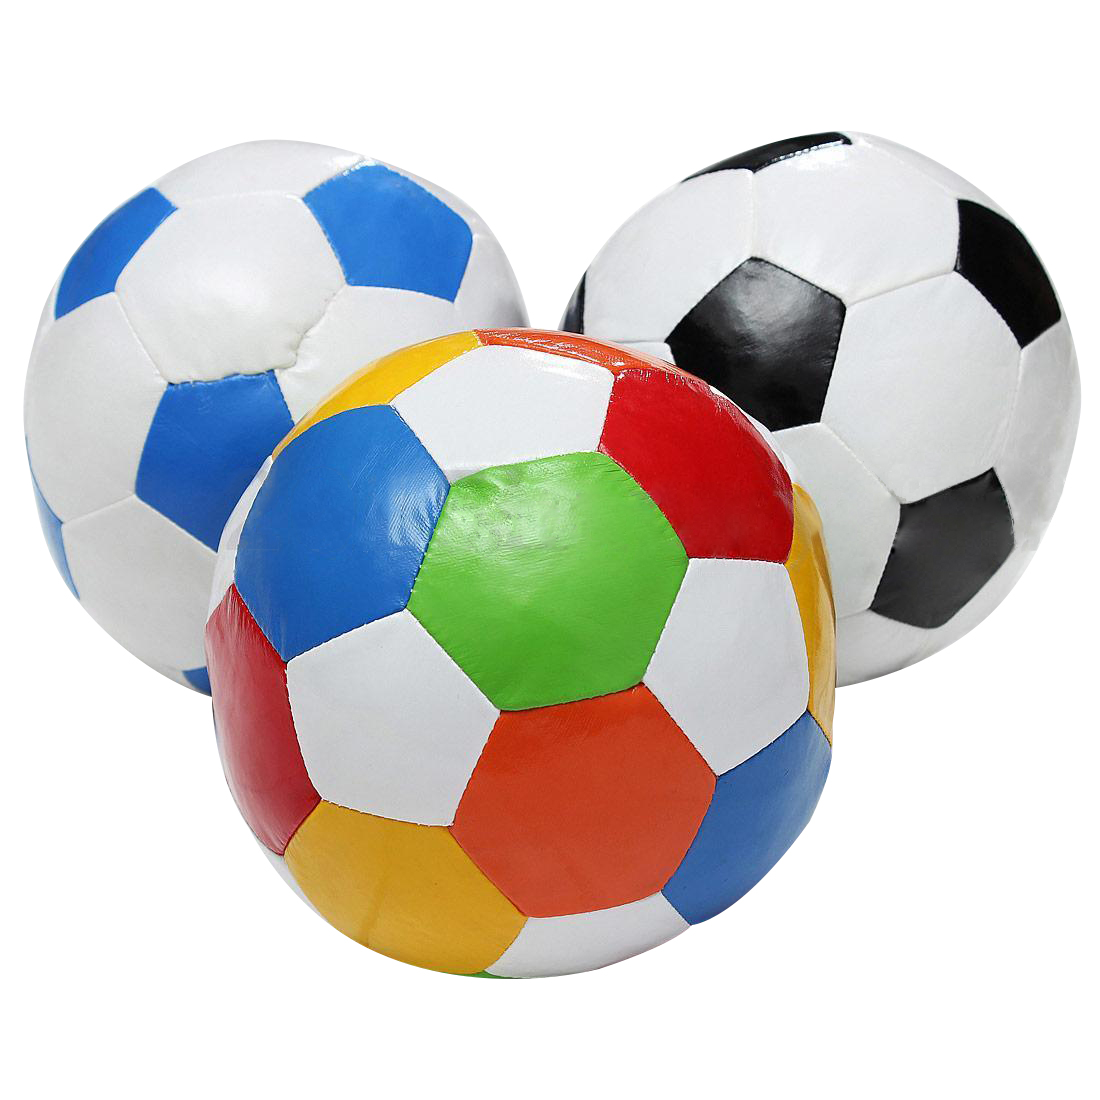 HOT SALE pc 14.4cm Soft Indoor PVC Surface Football Soccer Play Ball Toy